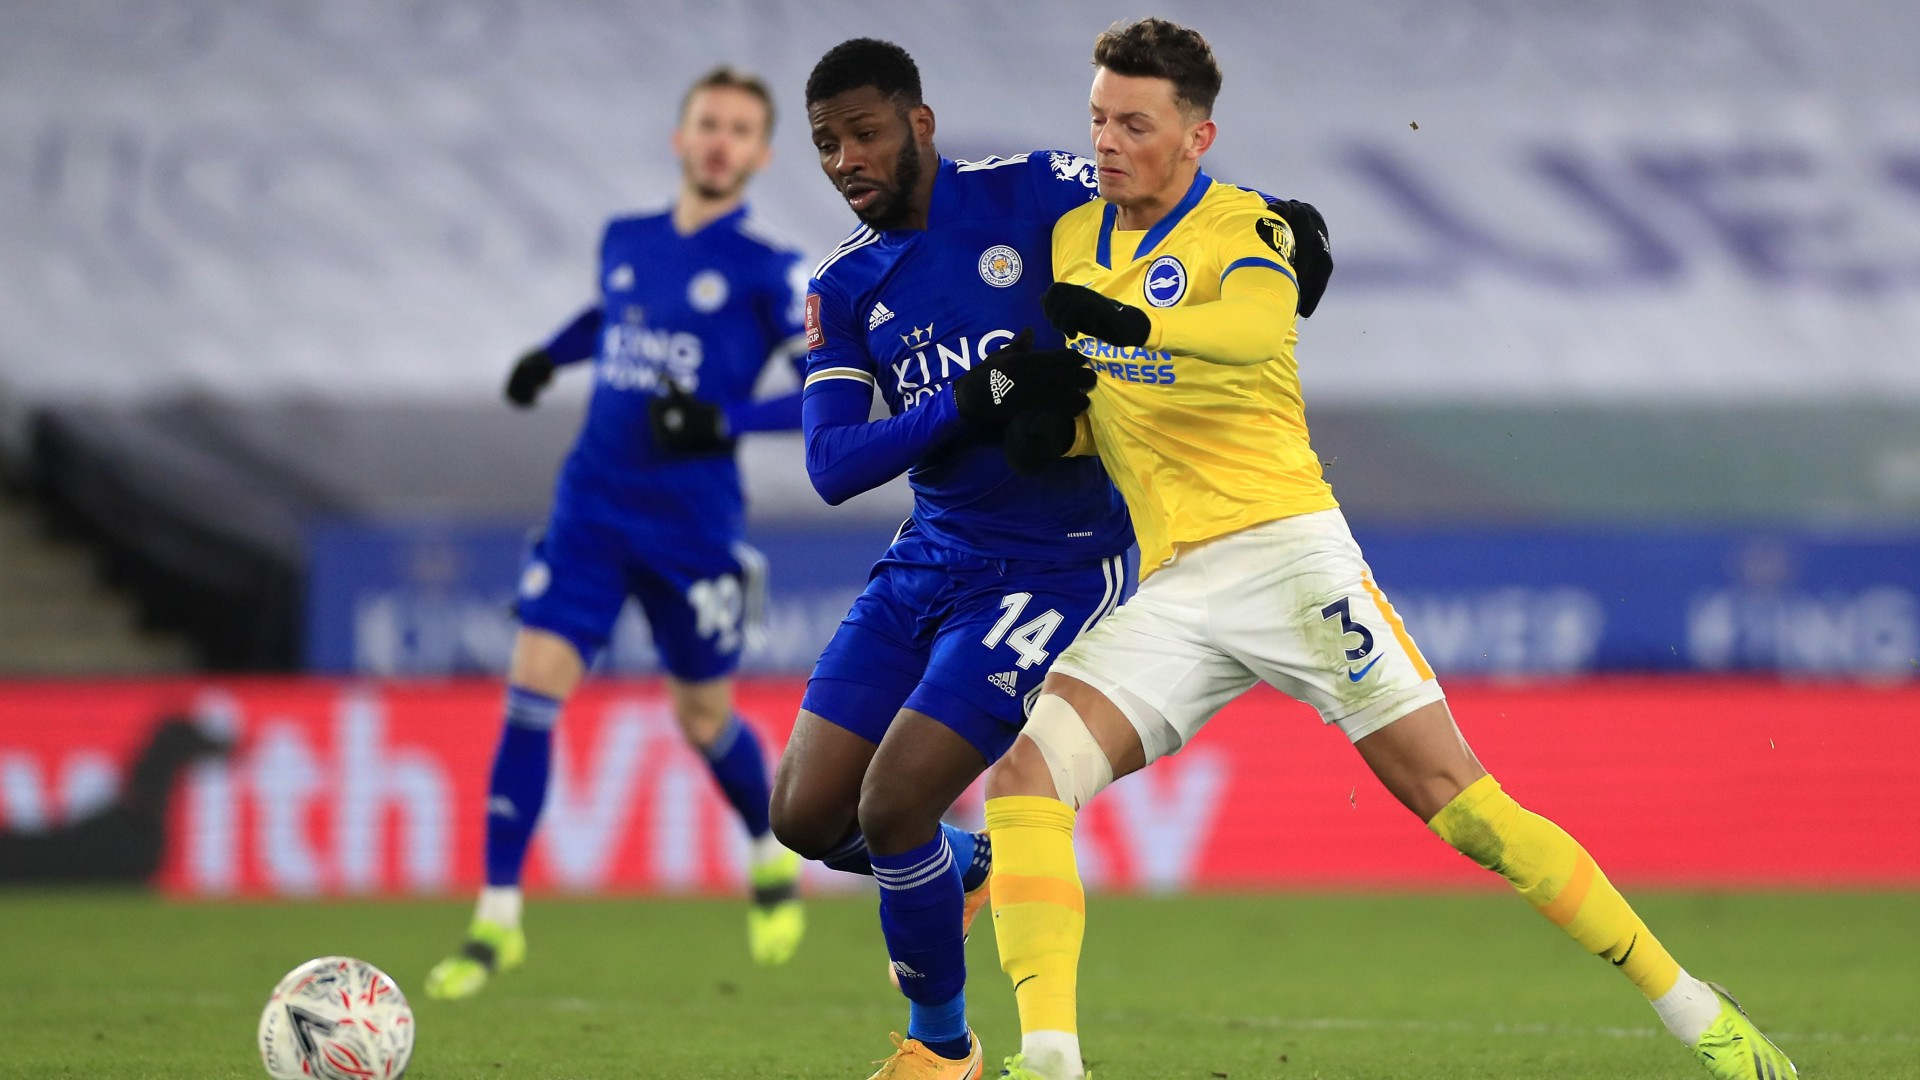 'It was too cold for extra-time' – Iheanacho thrilled to lead Leicester City past Brighton & Hove Albion